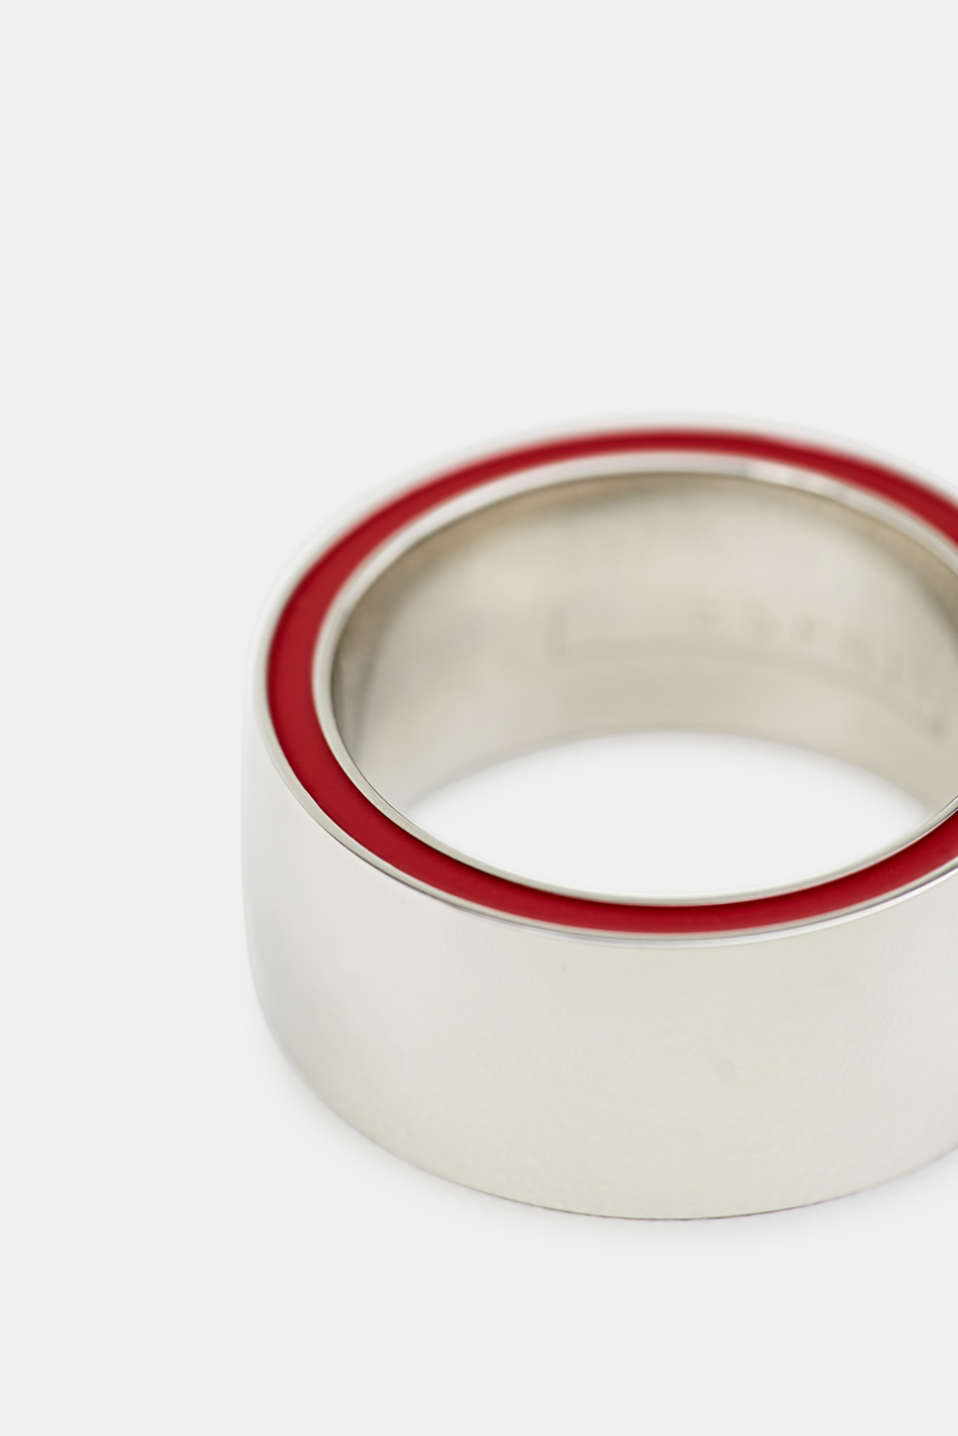 Ring with a red colour accent, stainless steel, LCSILVER, detail image number 1